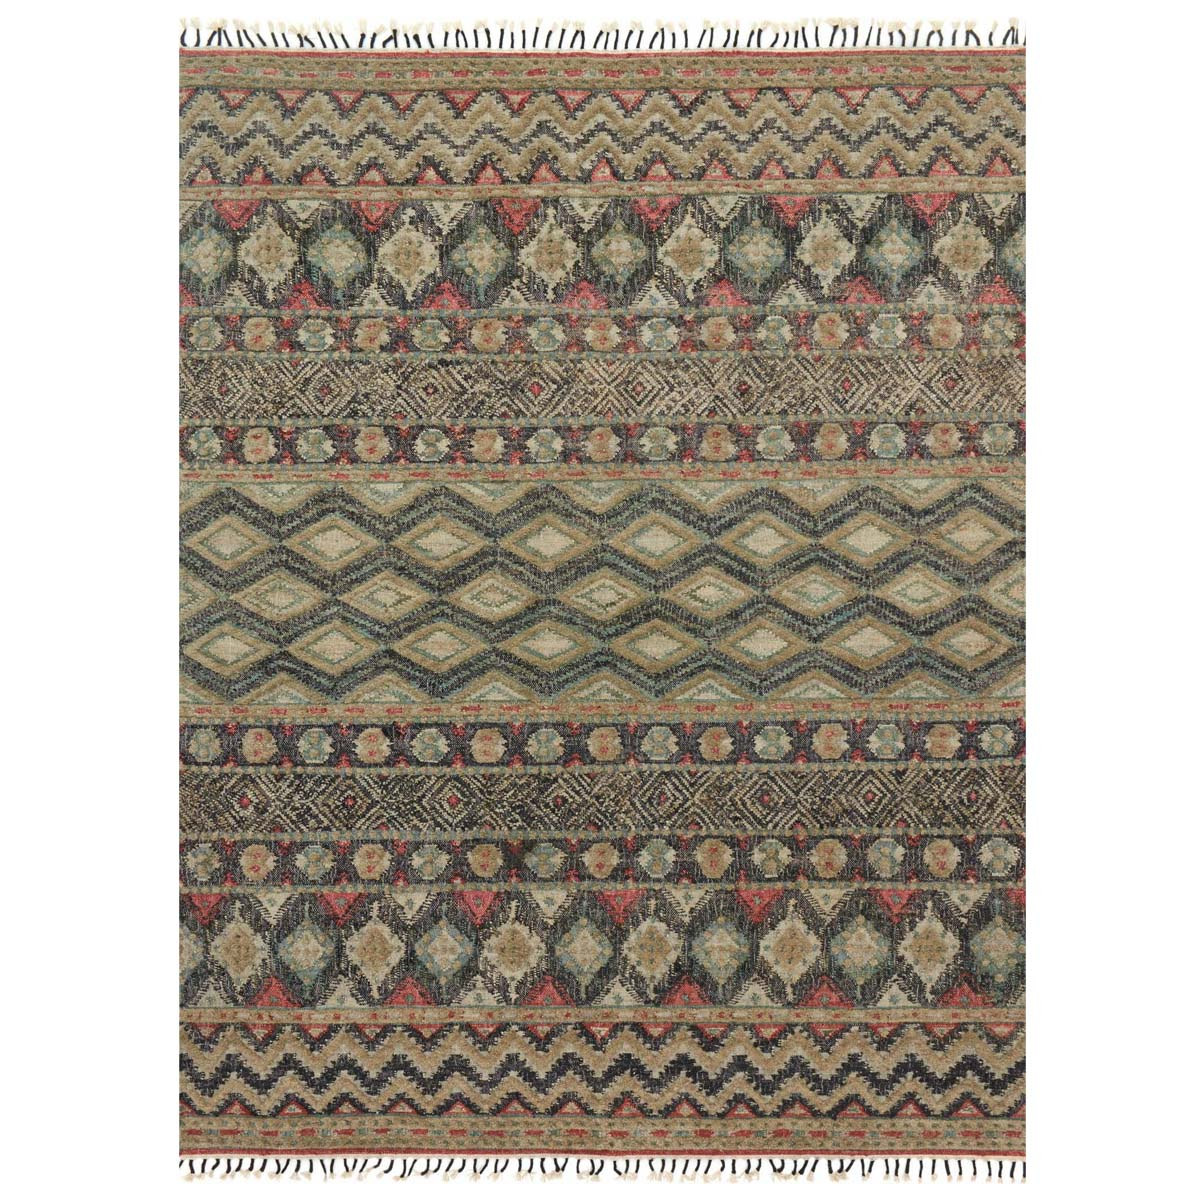 Zigzag Diamonds Rug - 3 x 8